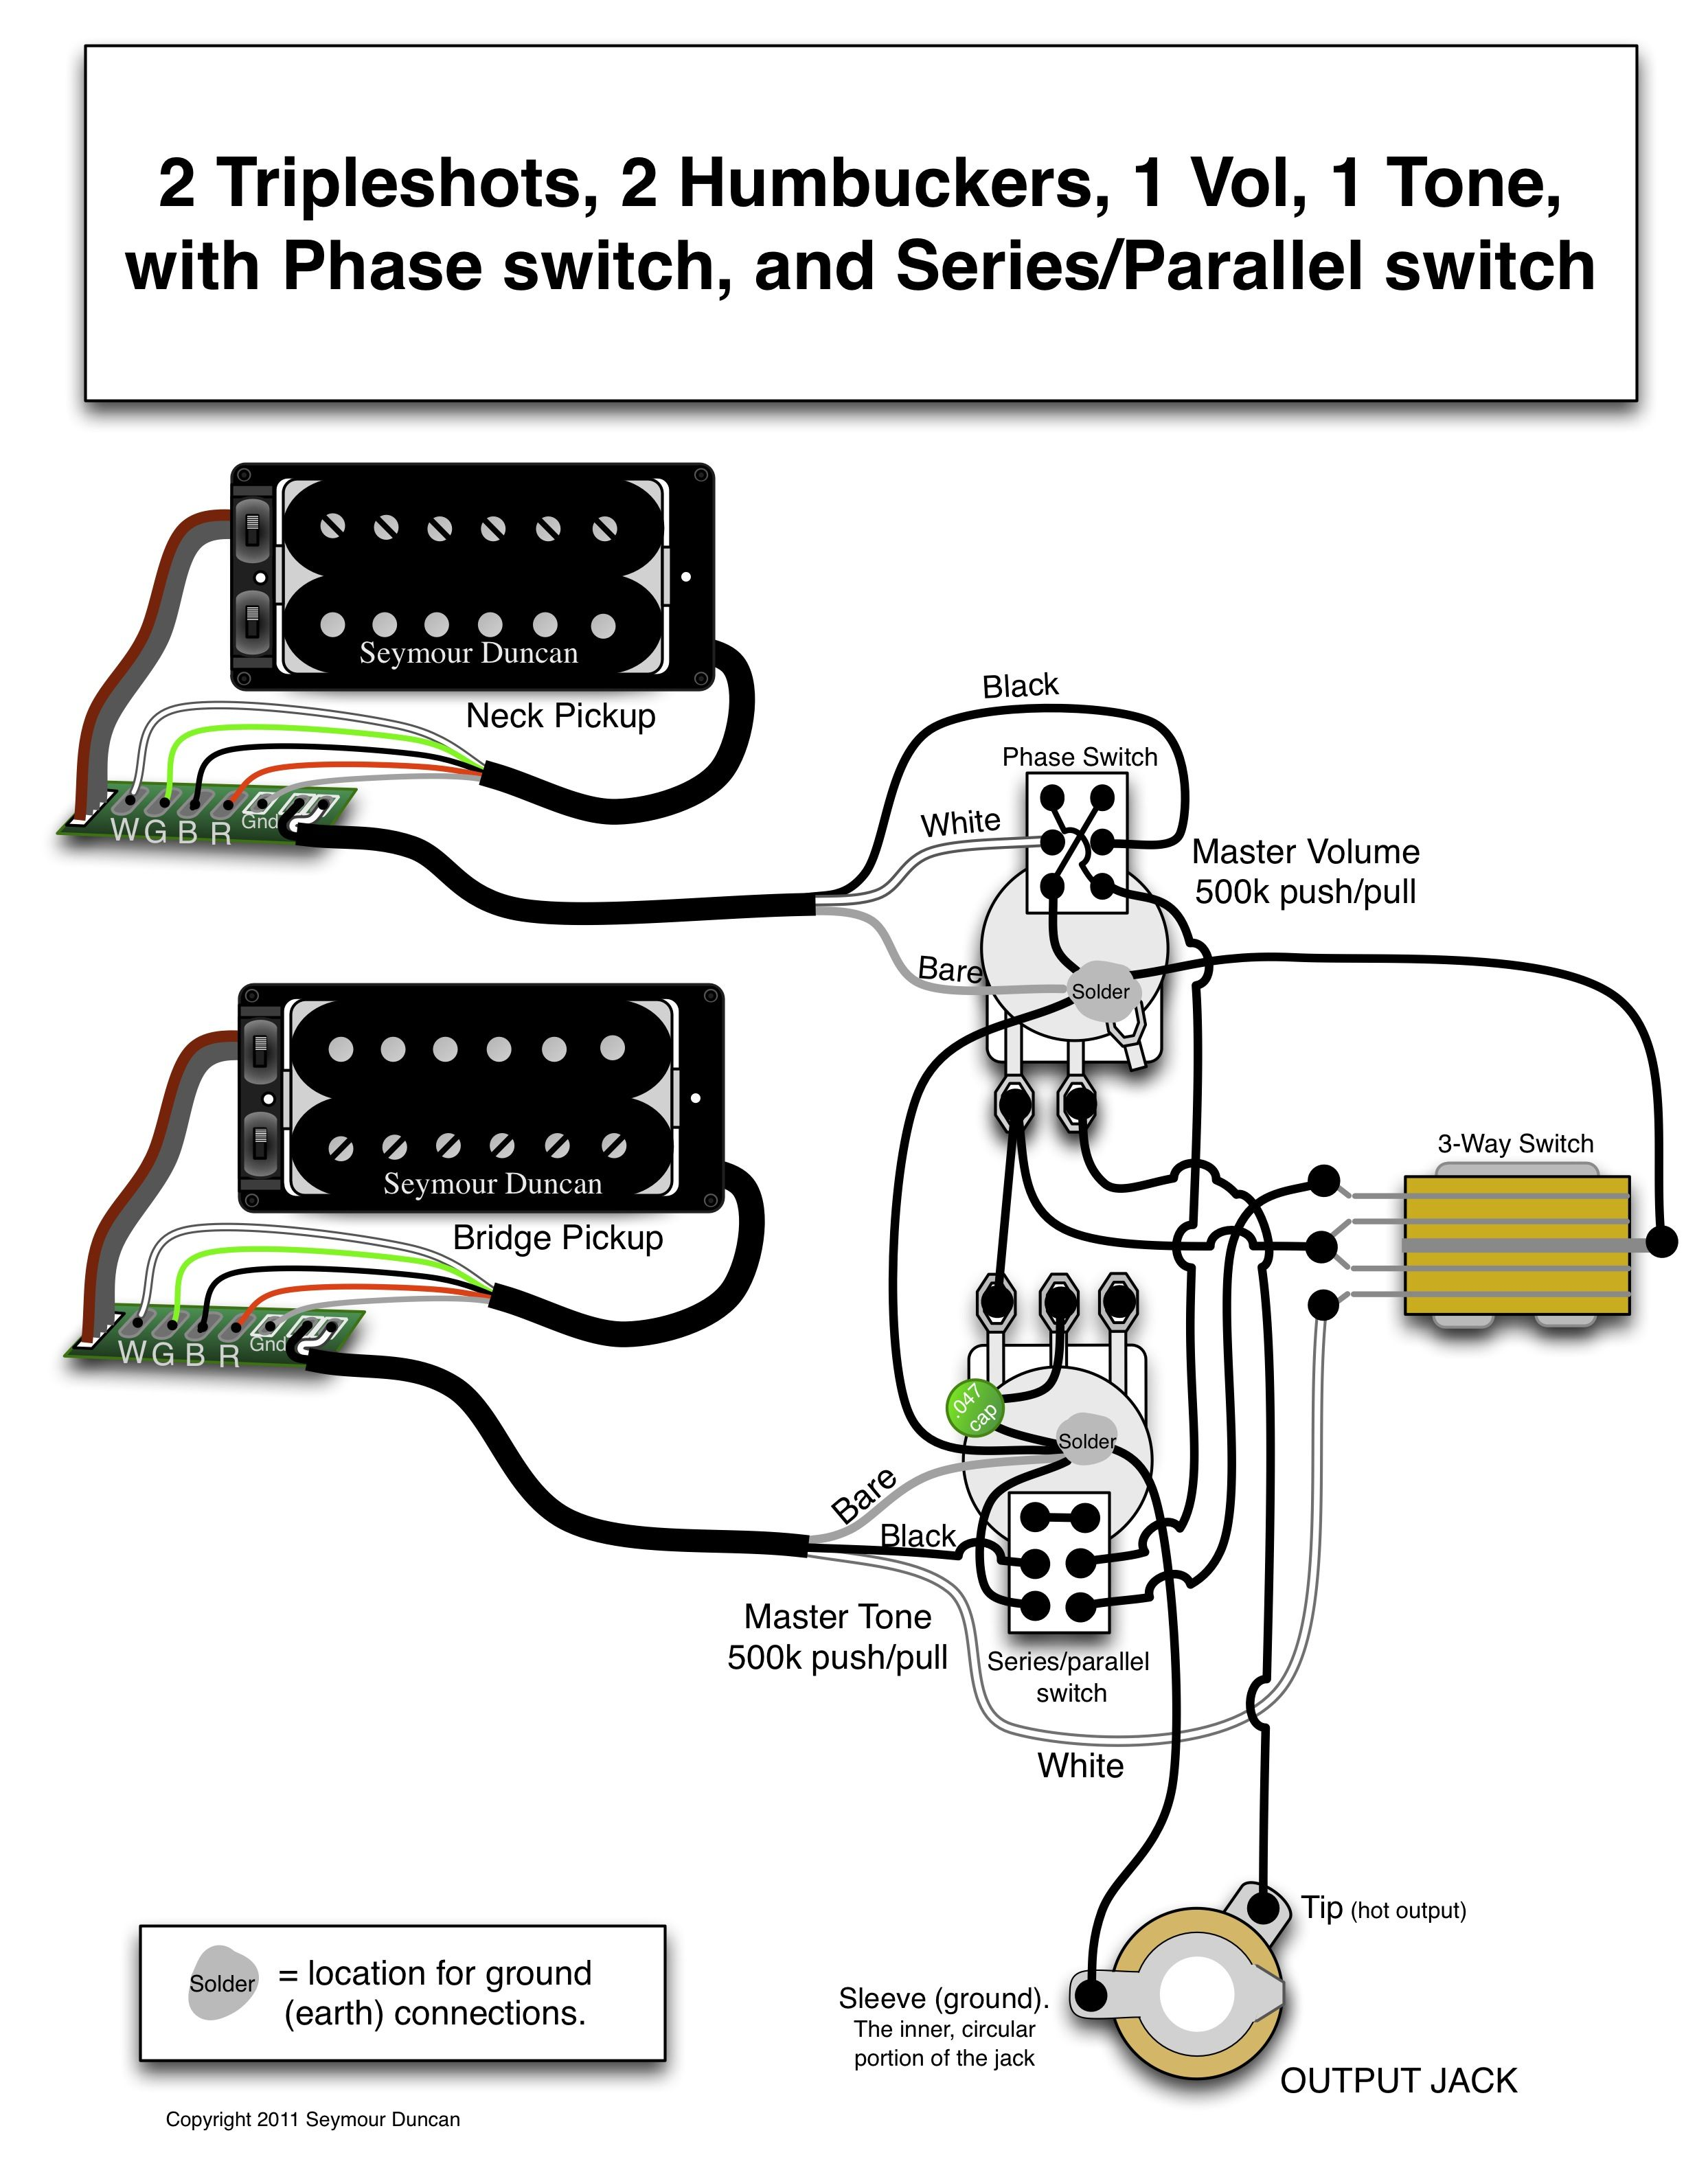 prs wiring diagram 5 way honda xrm 110 download seymour duncan - 2 triple shots, humbuckers, 1 vol with phase switch, tone ...